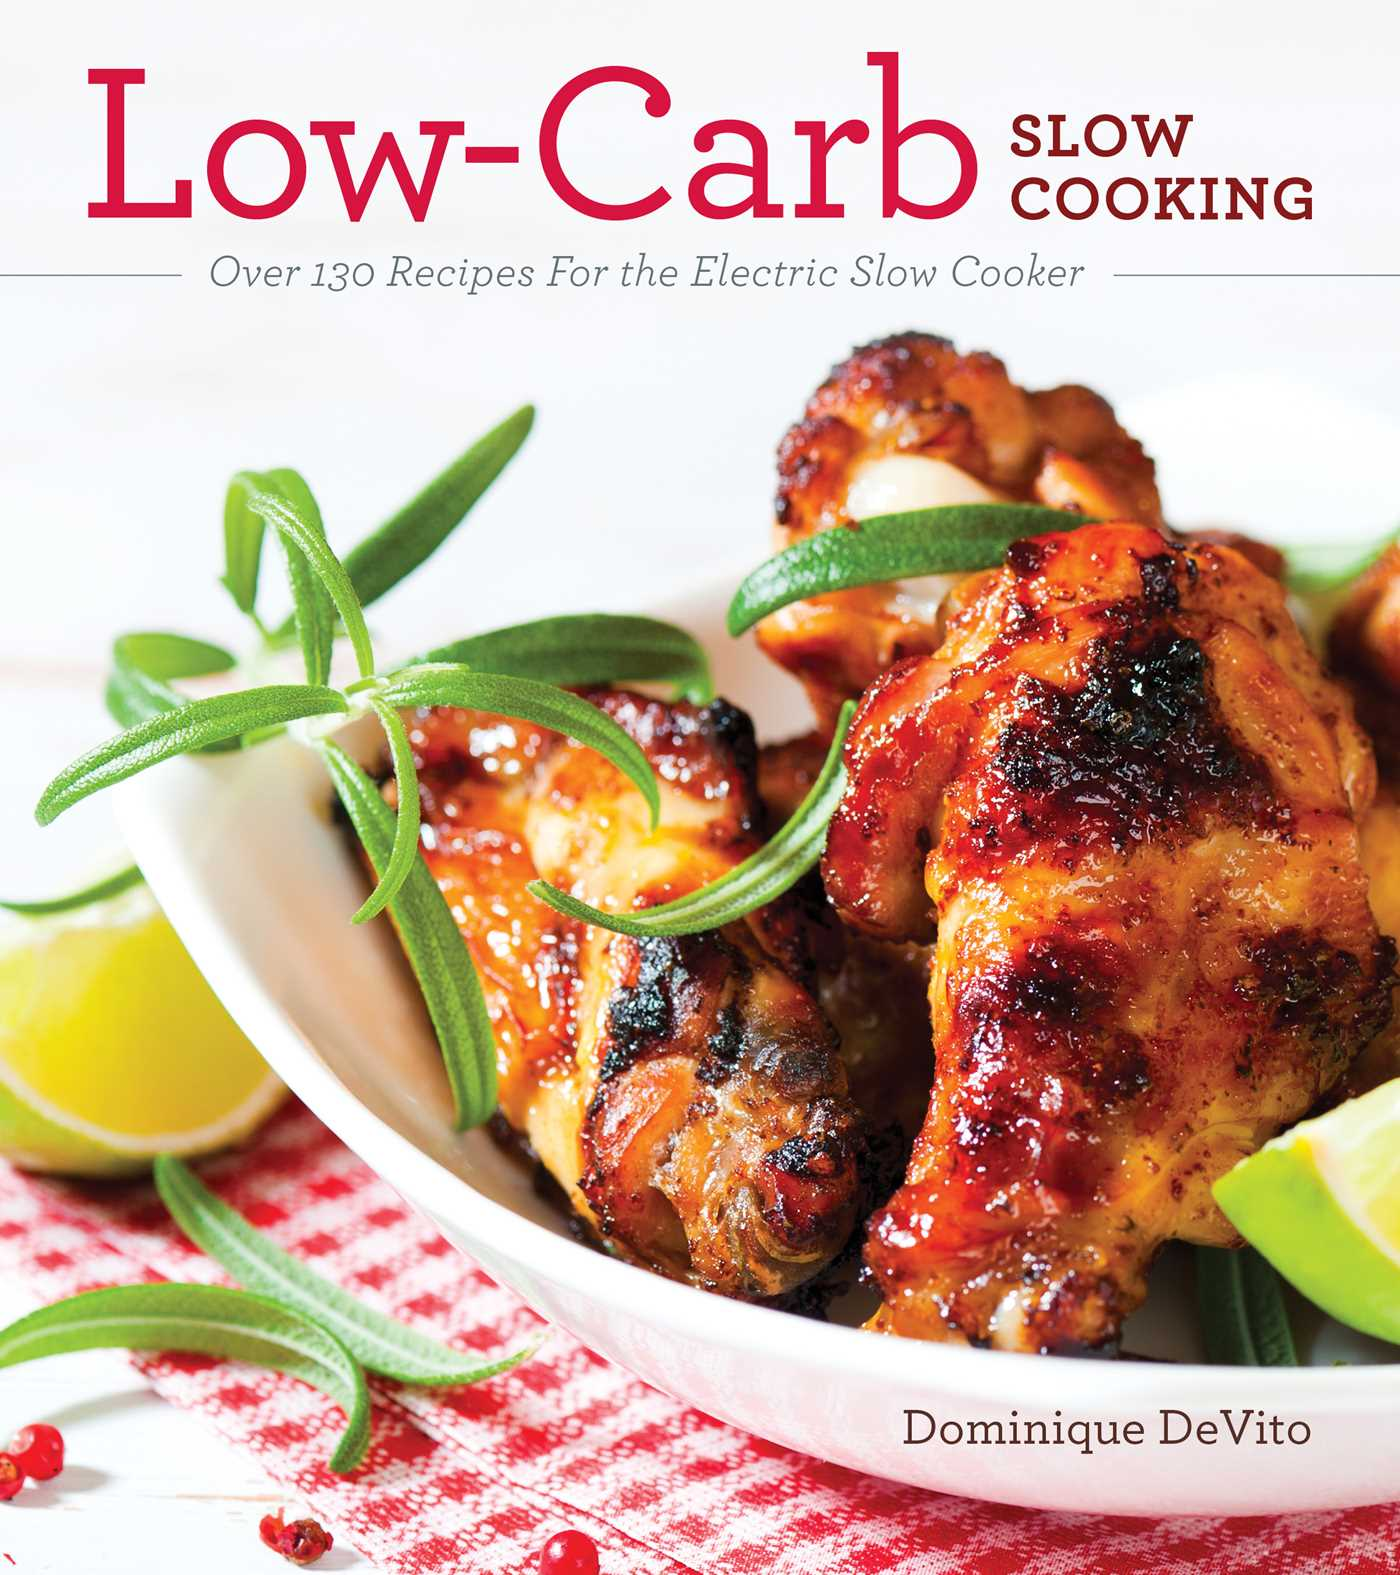 Low-carb-slow-cooking-9781604335064_hr